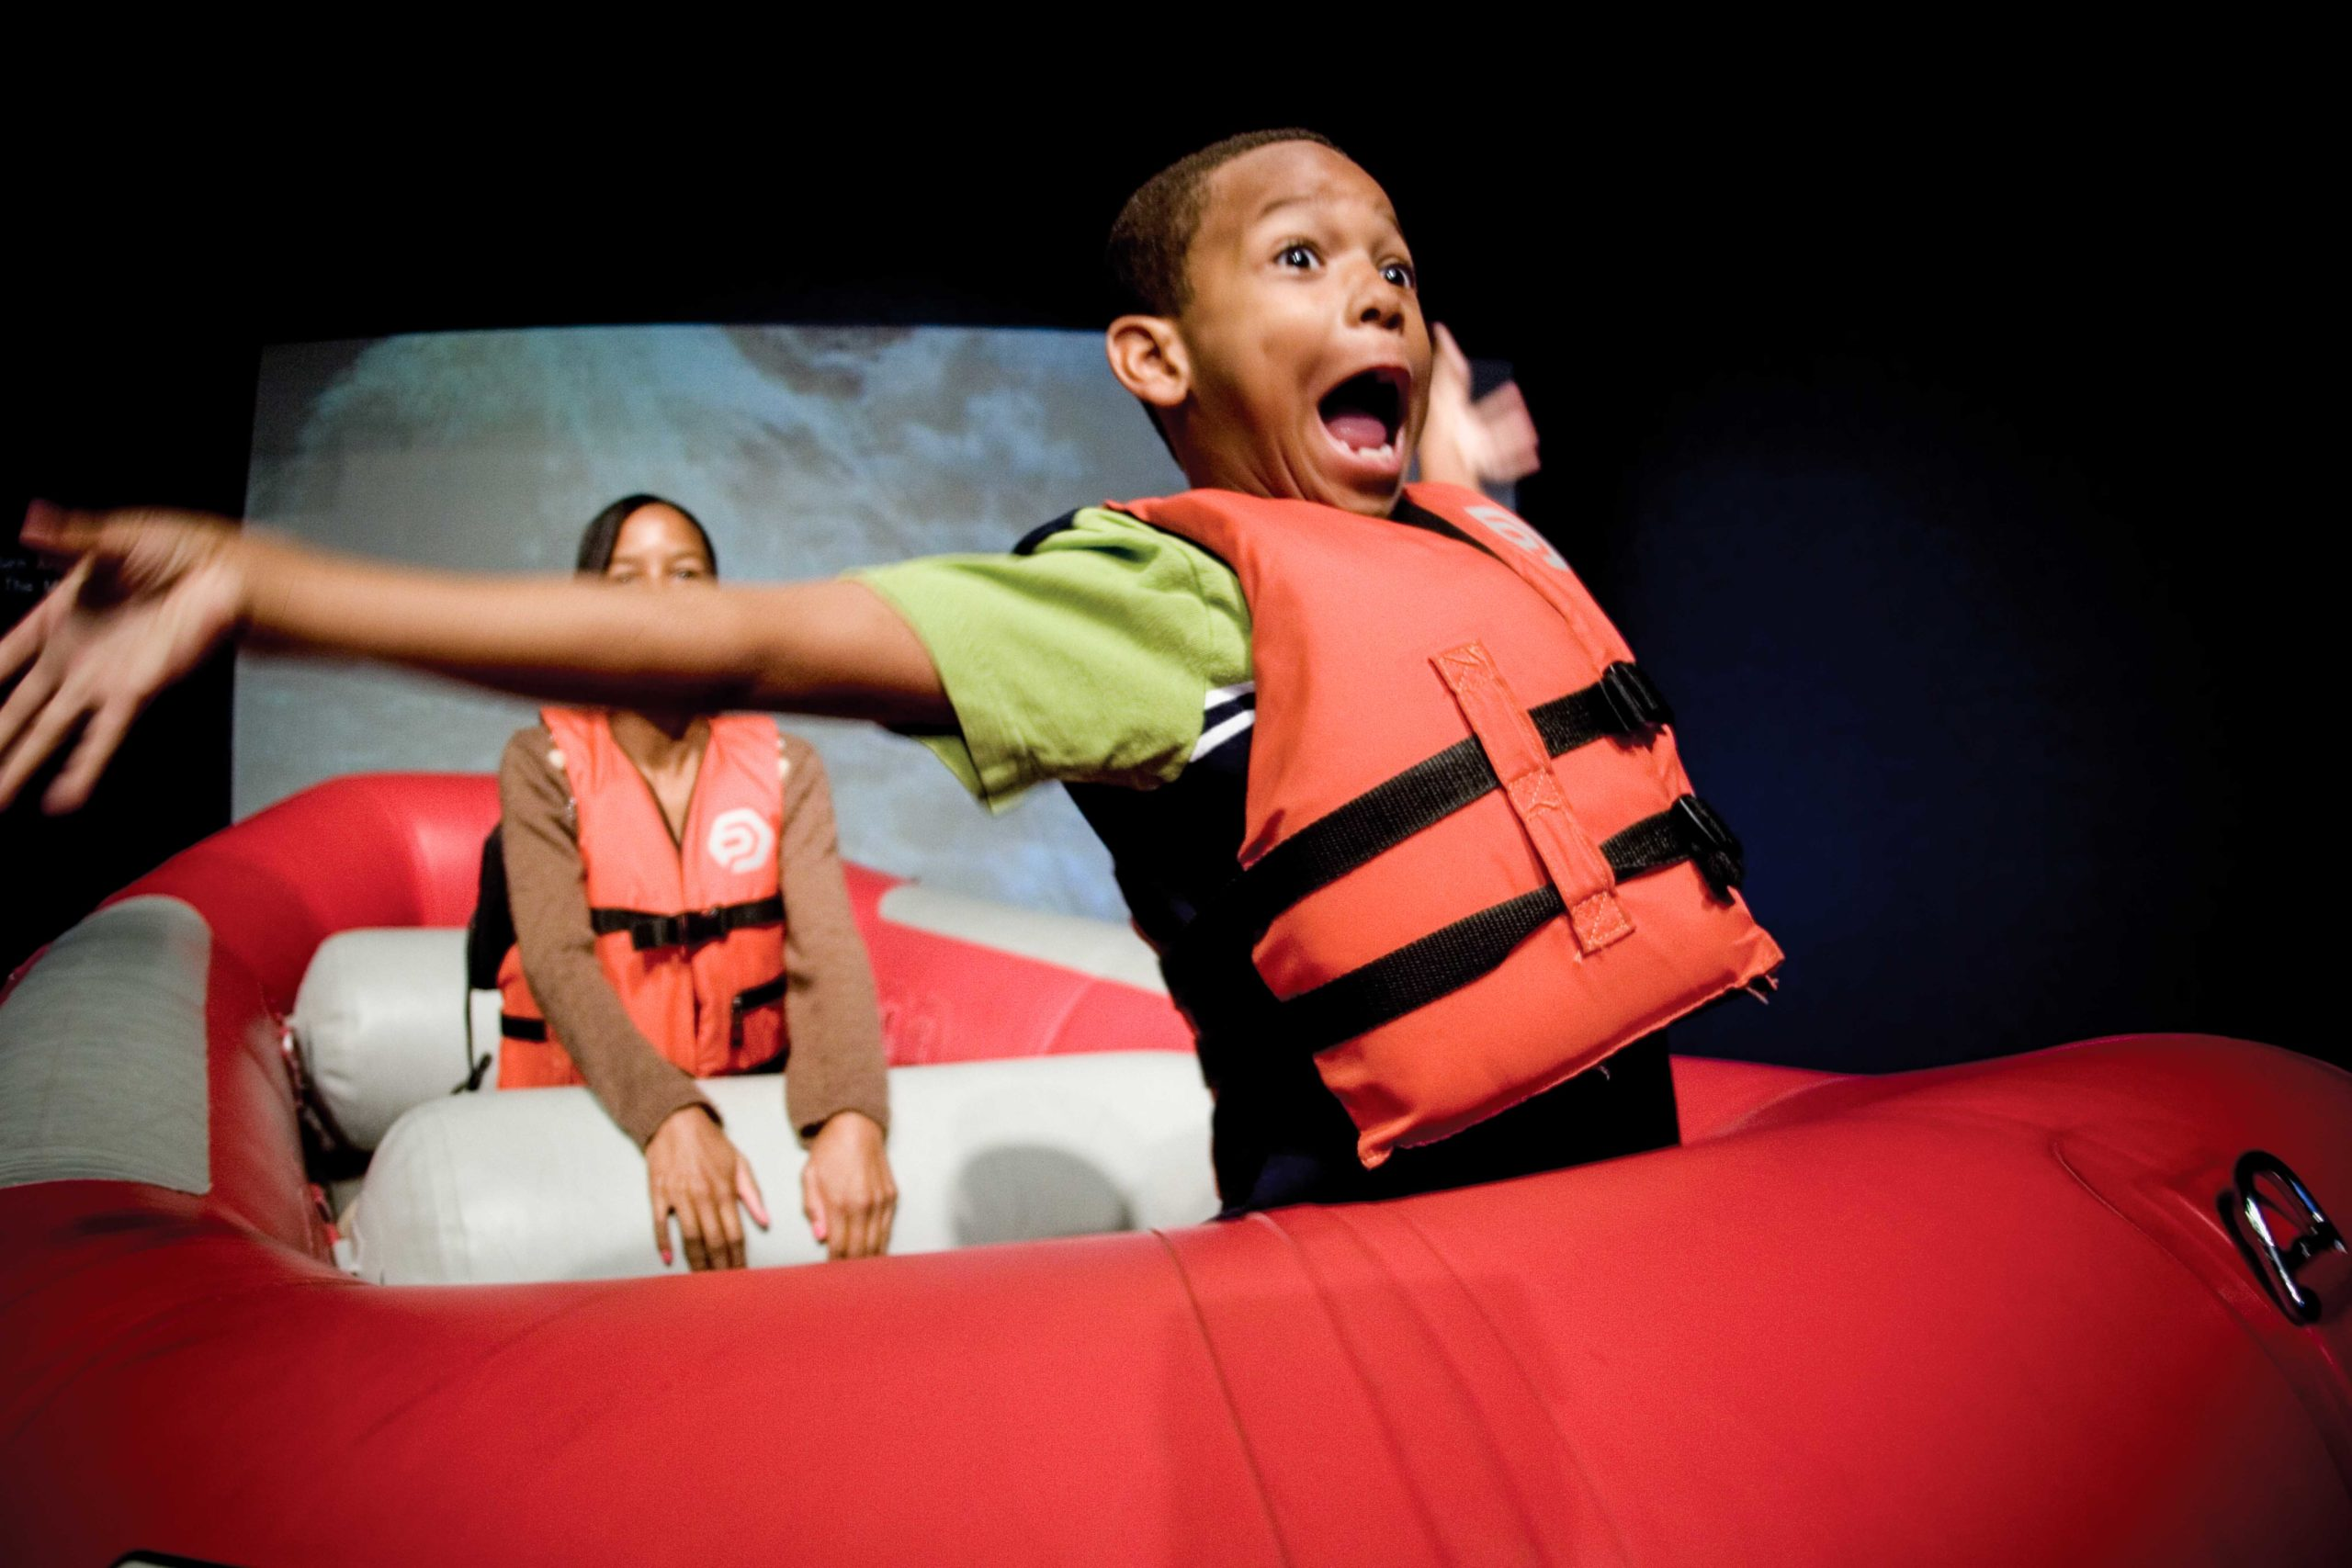 Excited young boy with life jacket on raft